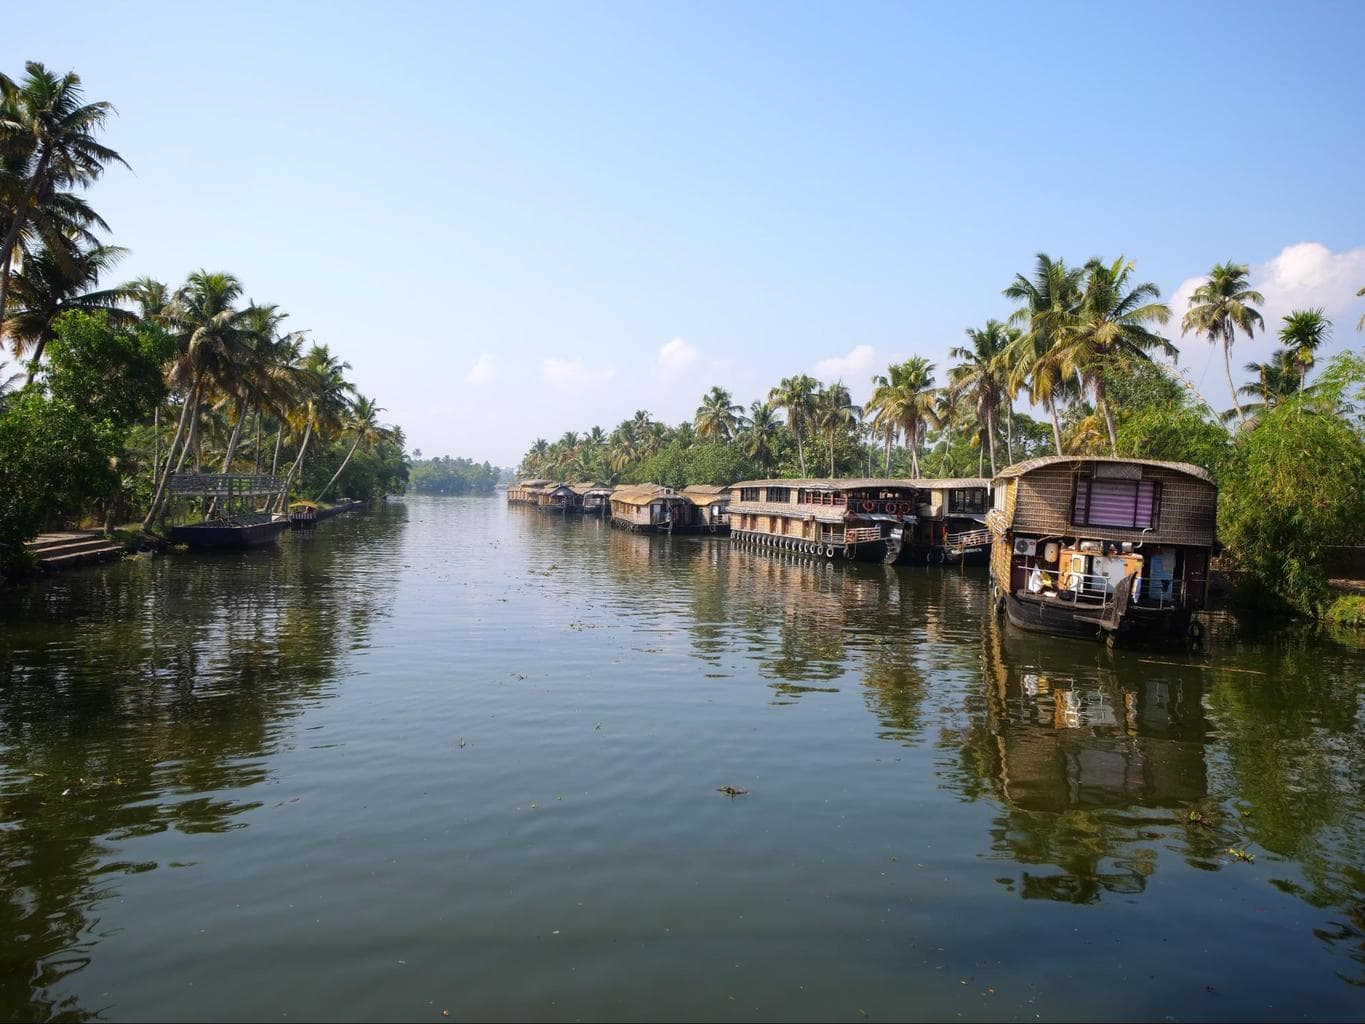 Tour of the backwaters of Kerala